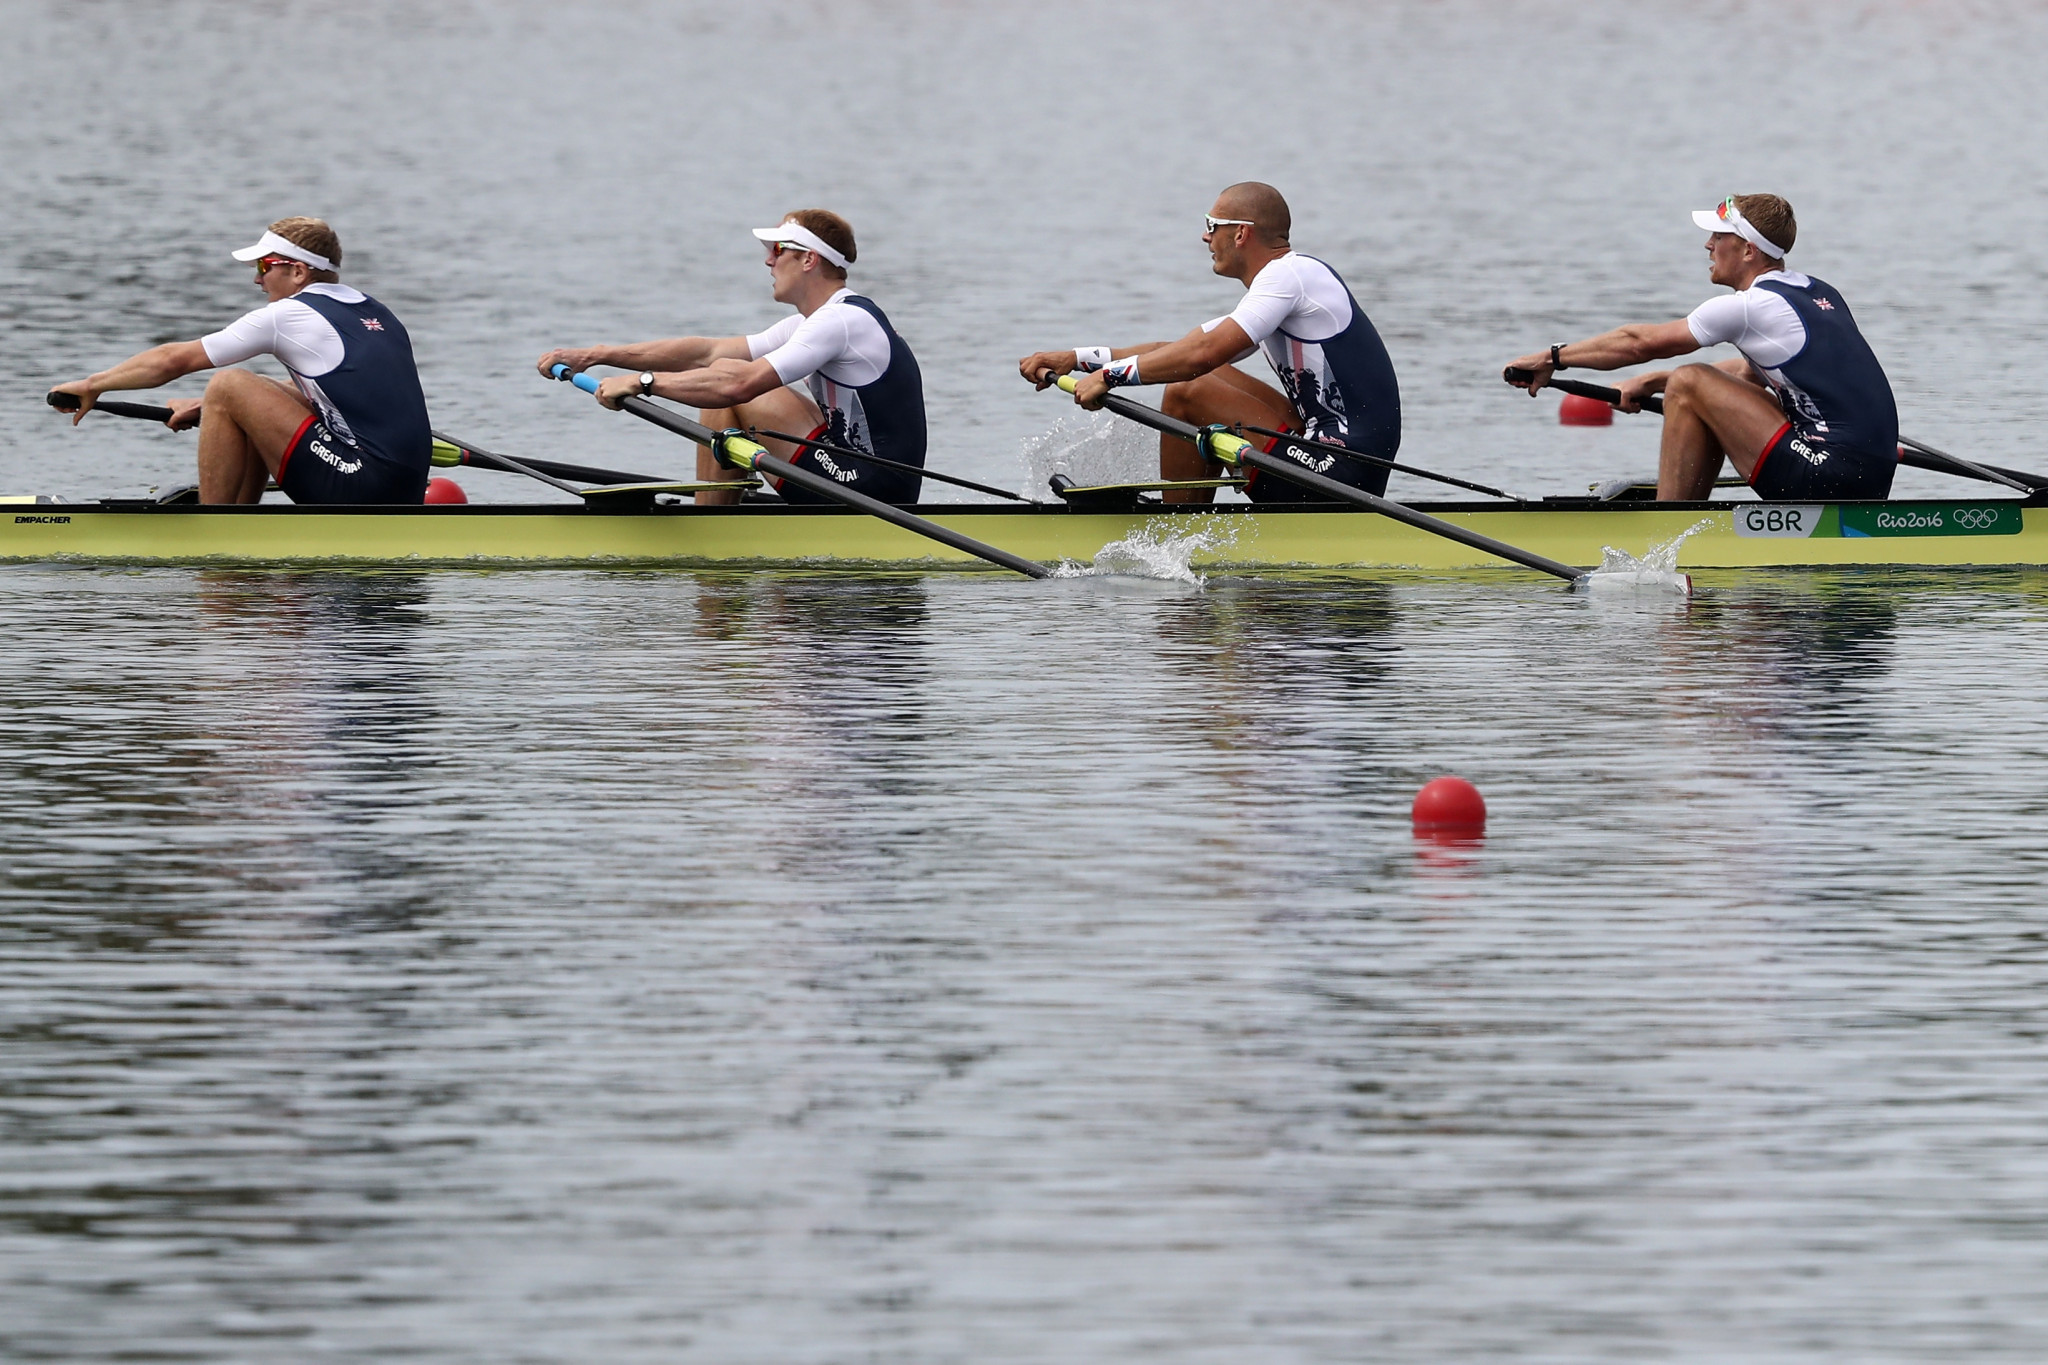 British four reach world rowing final in Florida despite late medical substitution